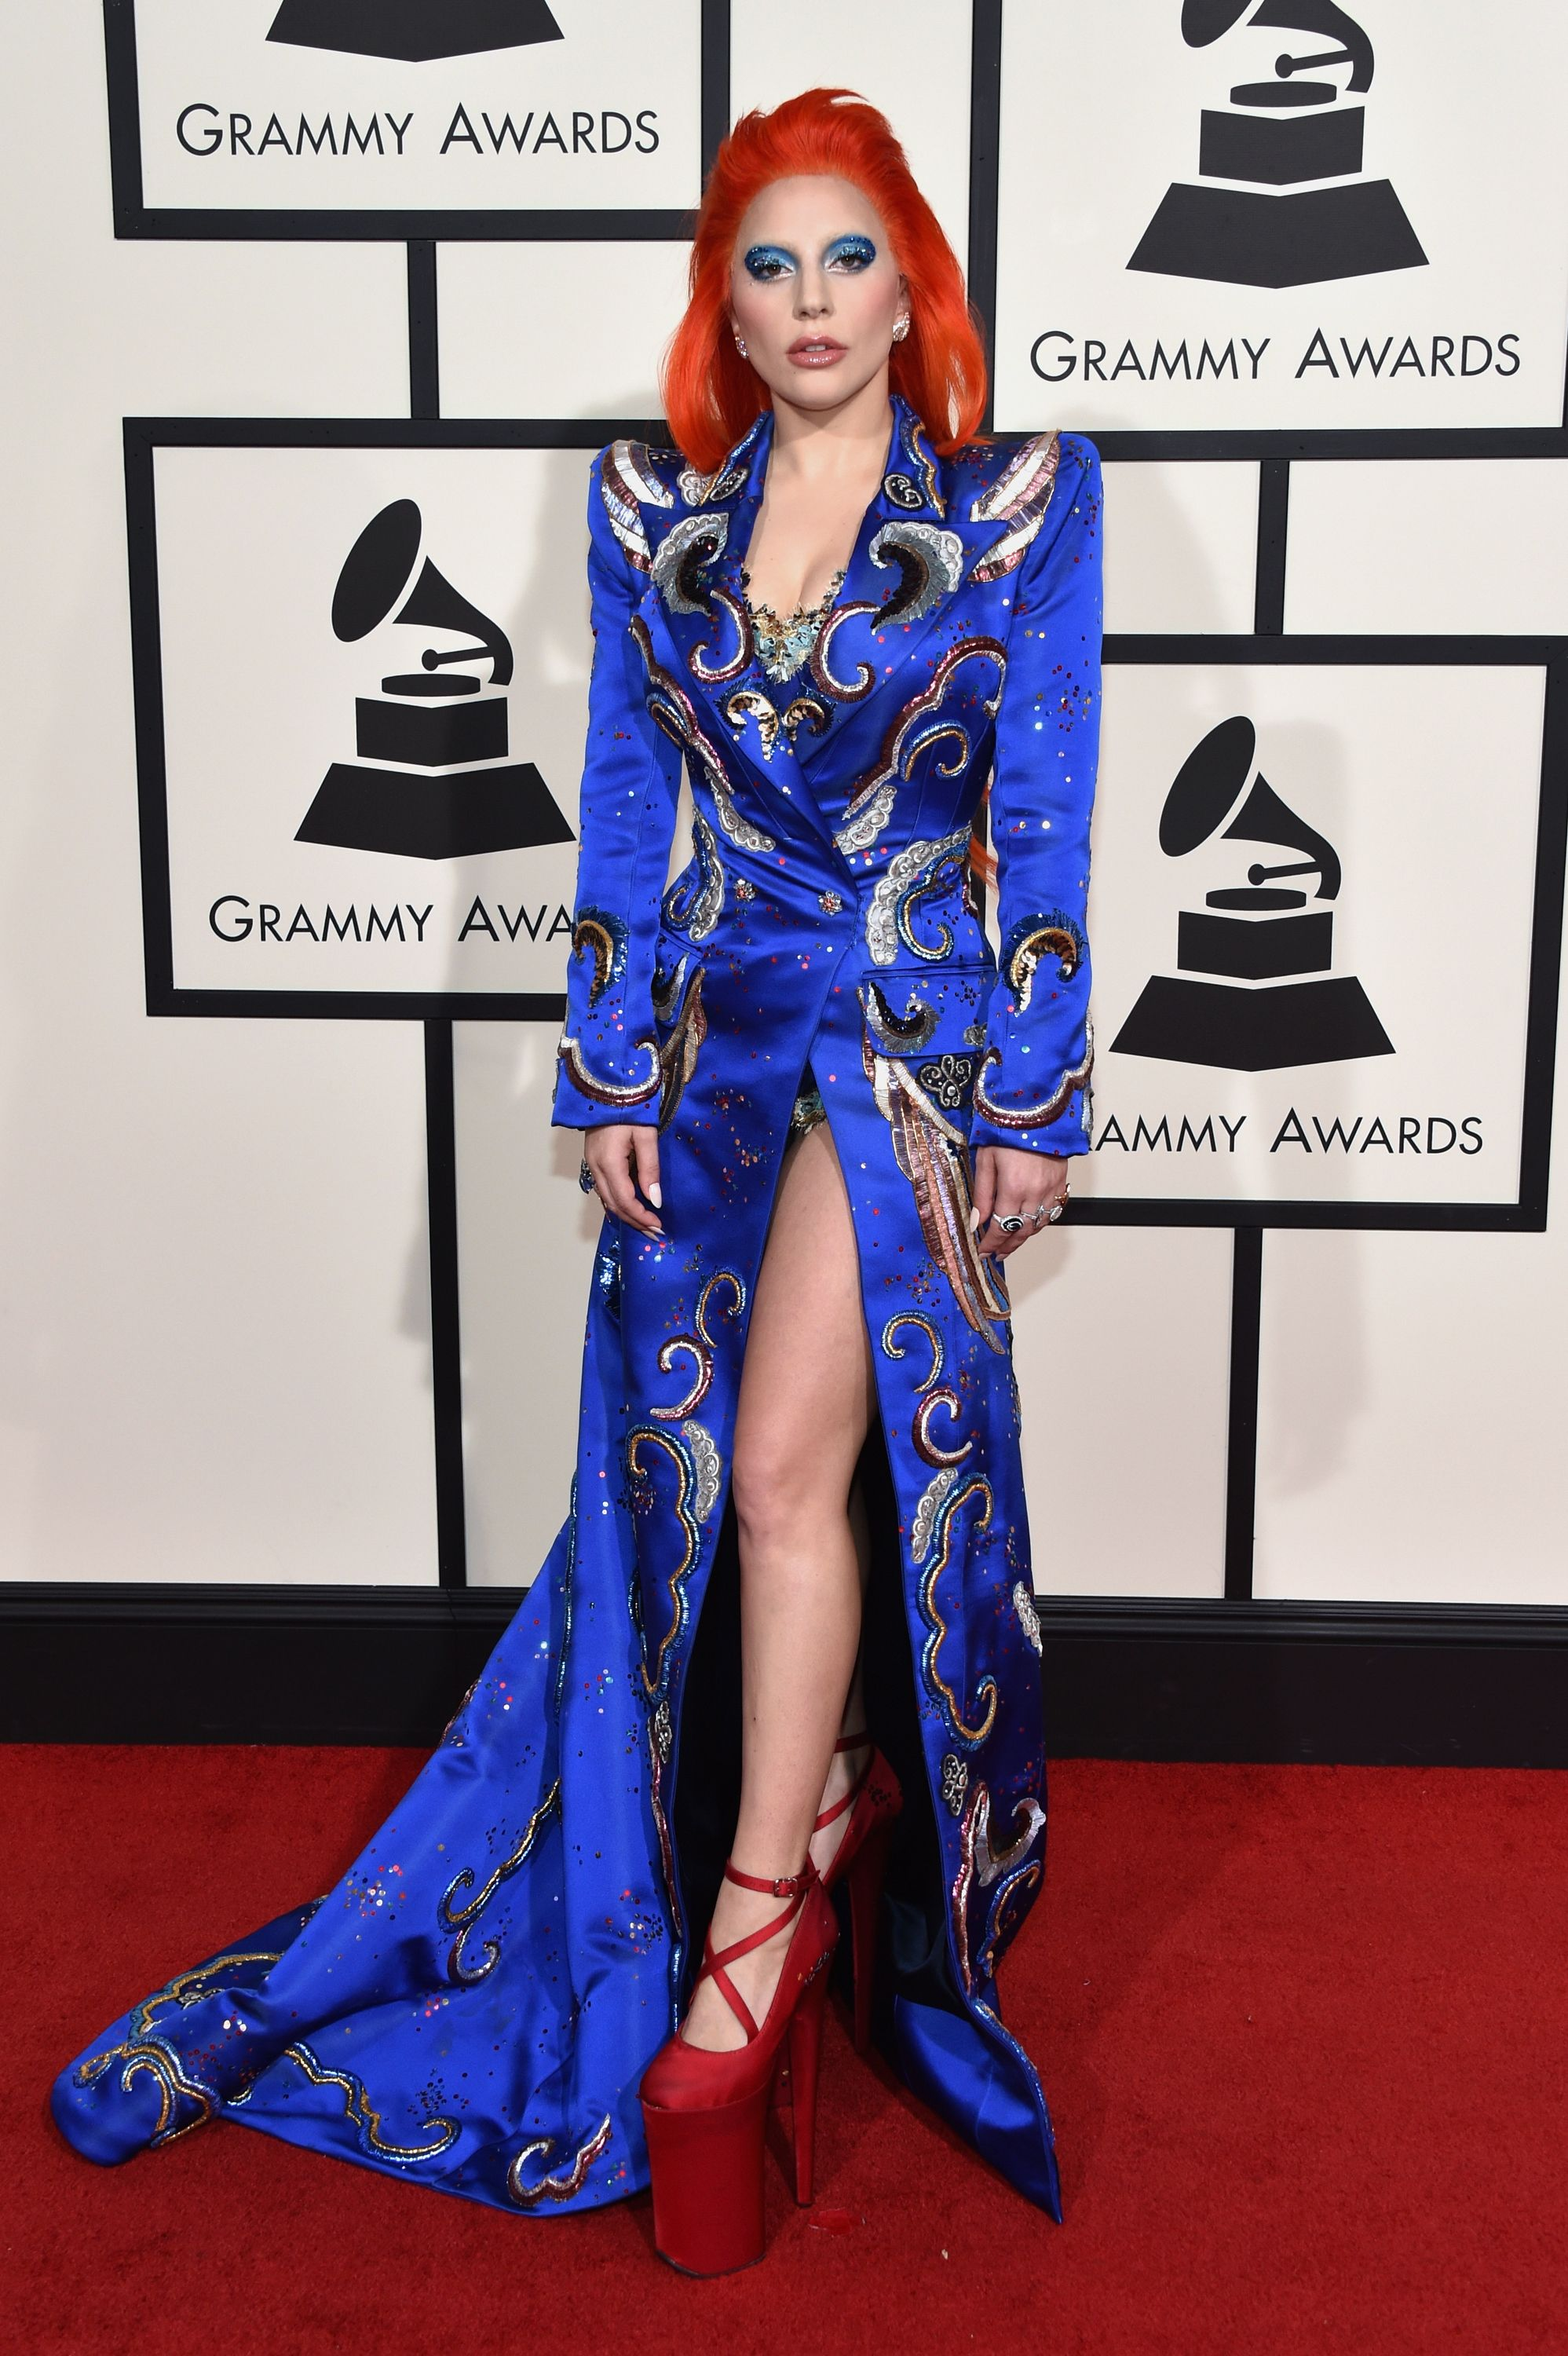 Grammy Awards 2016 Lady Gaga S Style Tribute To David Bowie Was Just Perfect